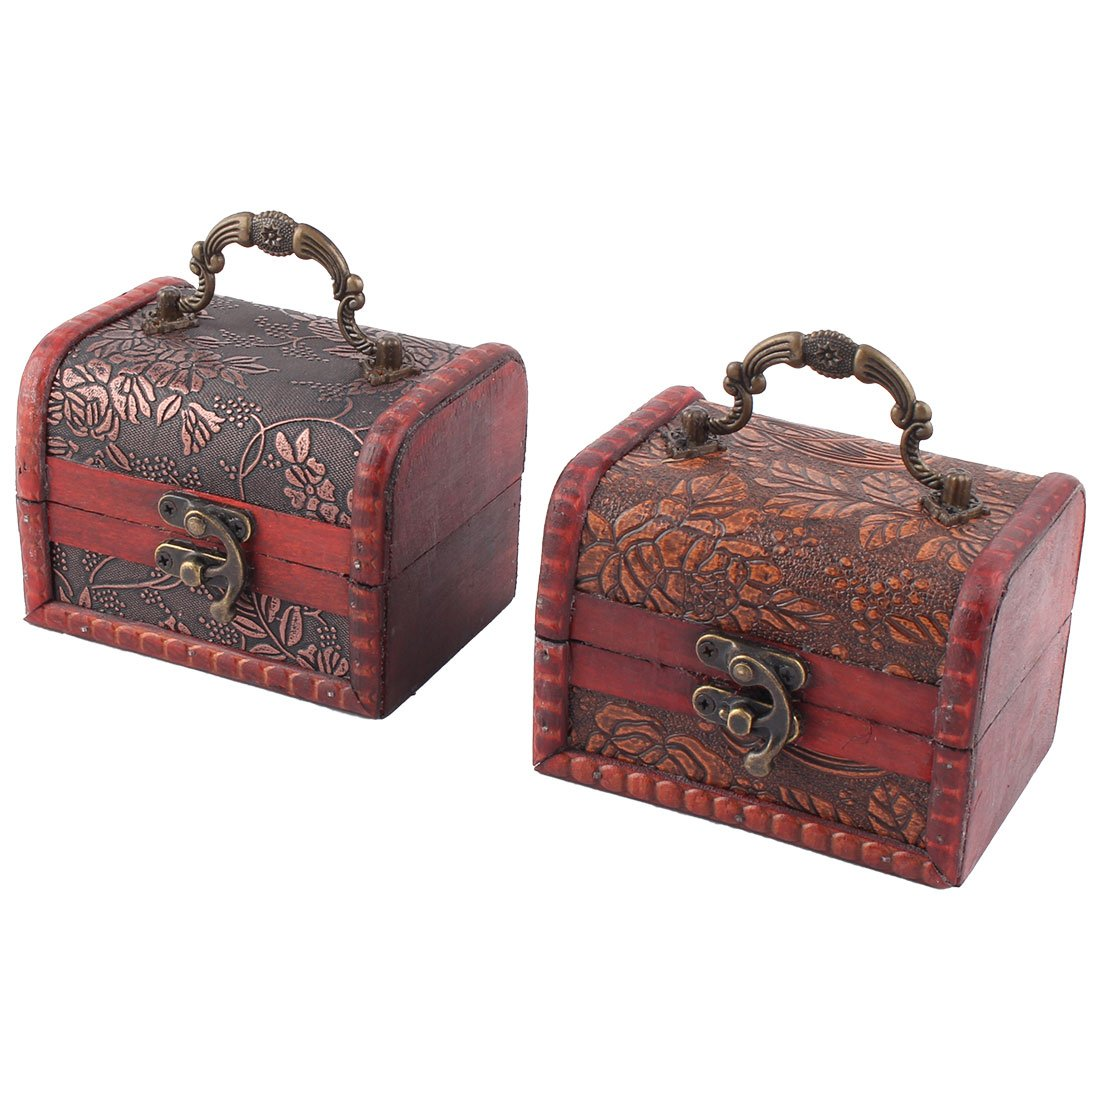 uxcell Wood Flower Pattern Family Ring Jewelry Candy Box Case Organizer 2 Pcs Dark Red by uxcell (Image #1)